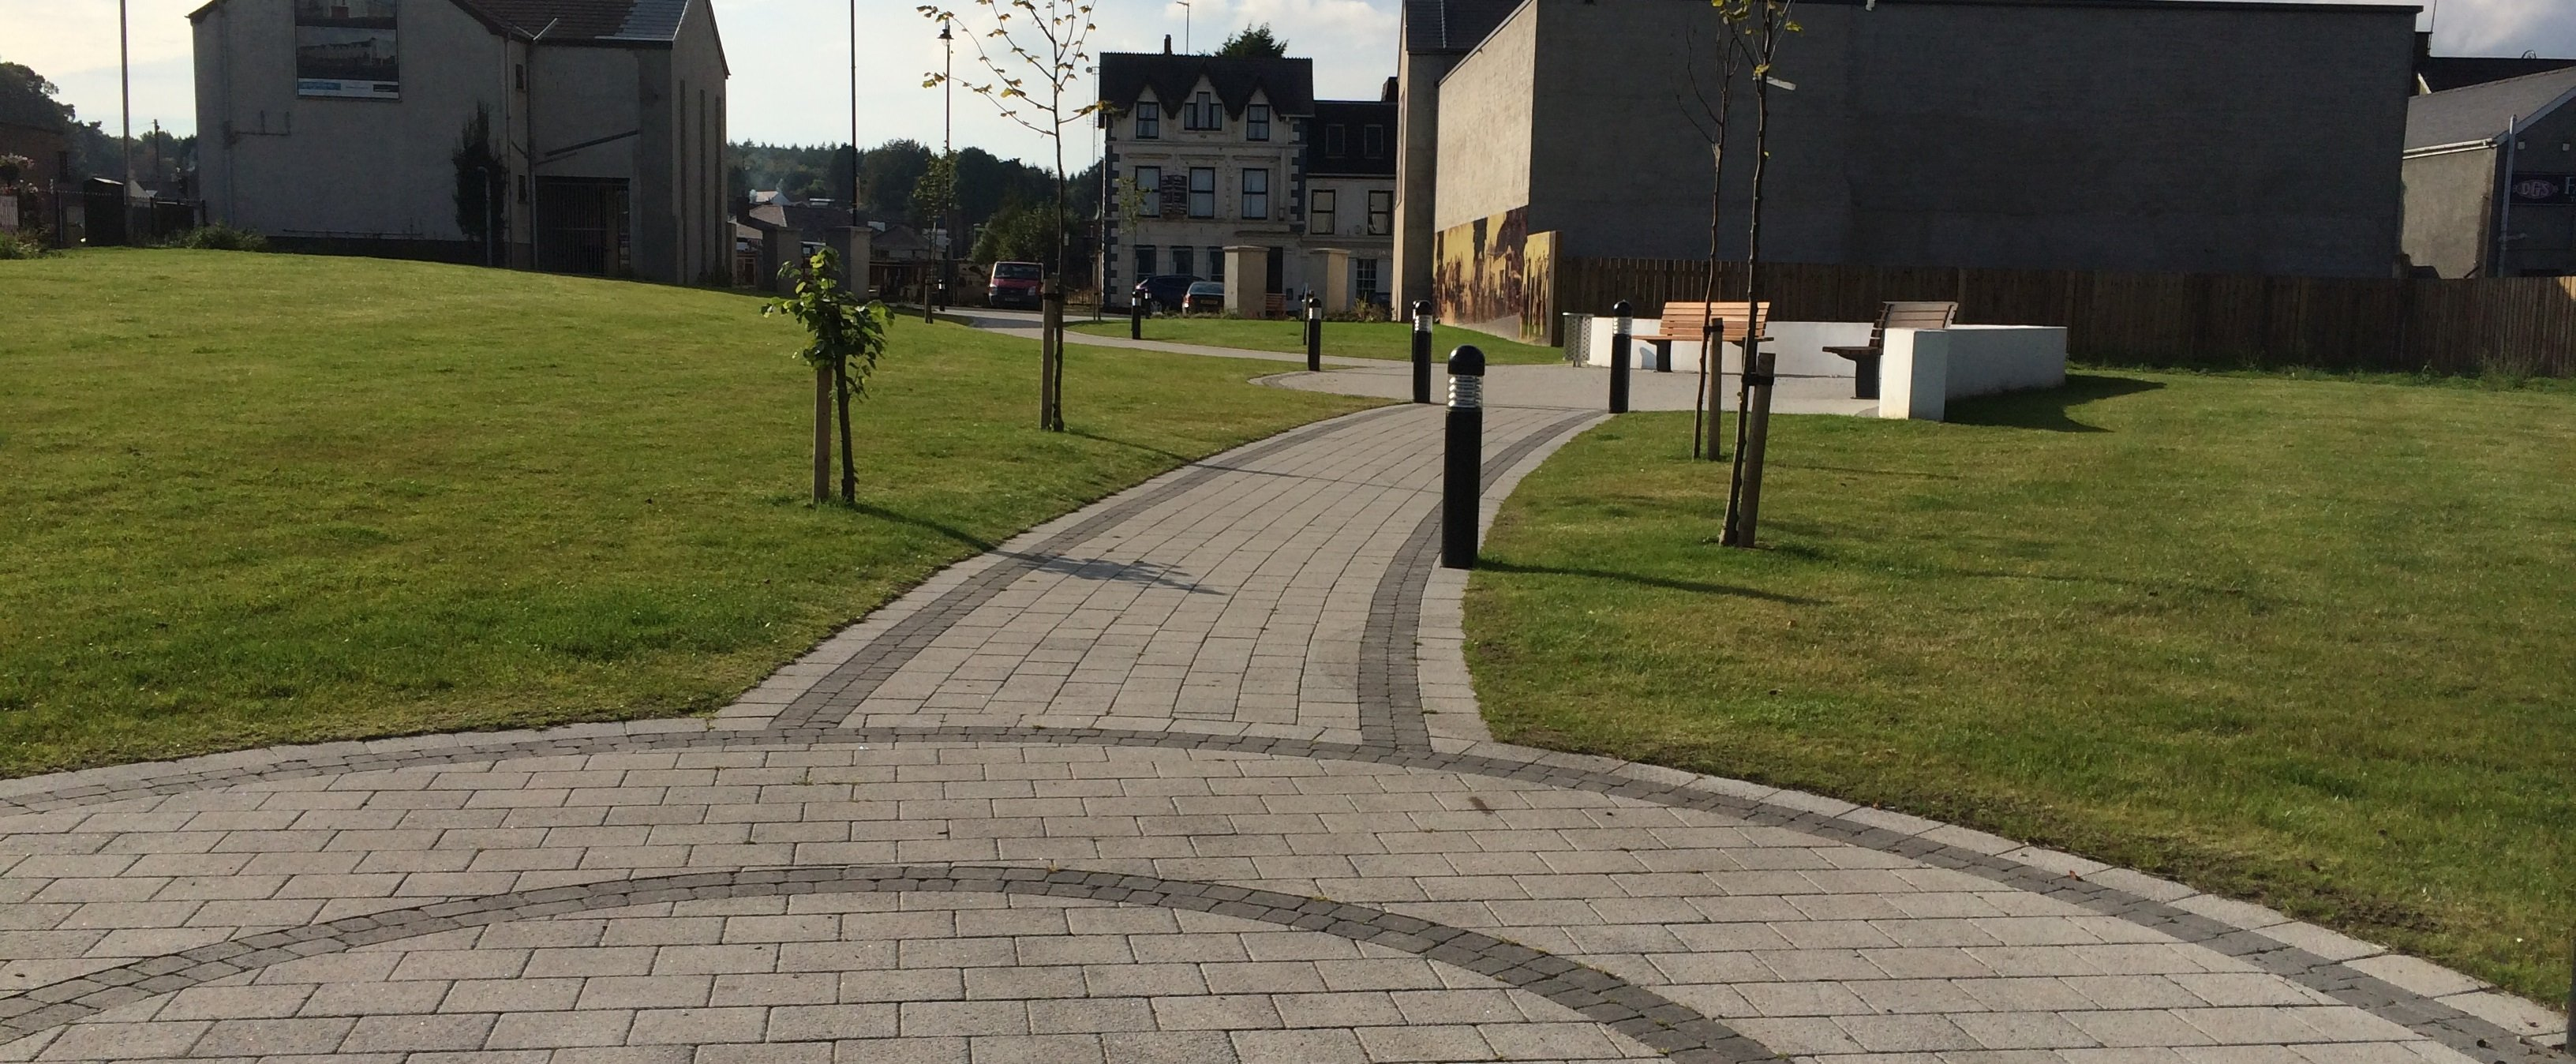 A path between two circular paved areas, in grey with darker grey edging